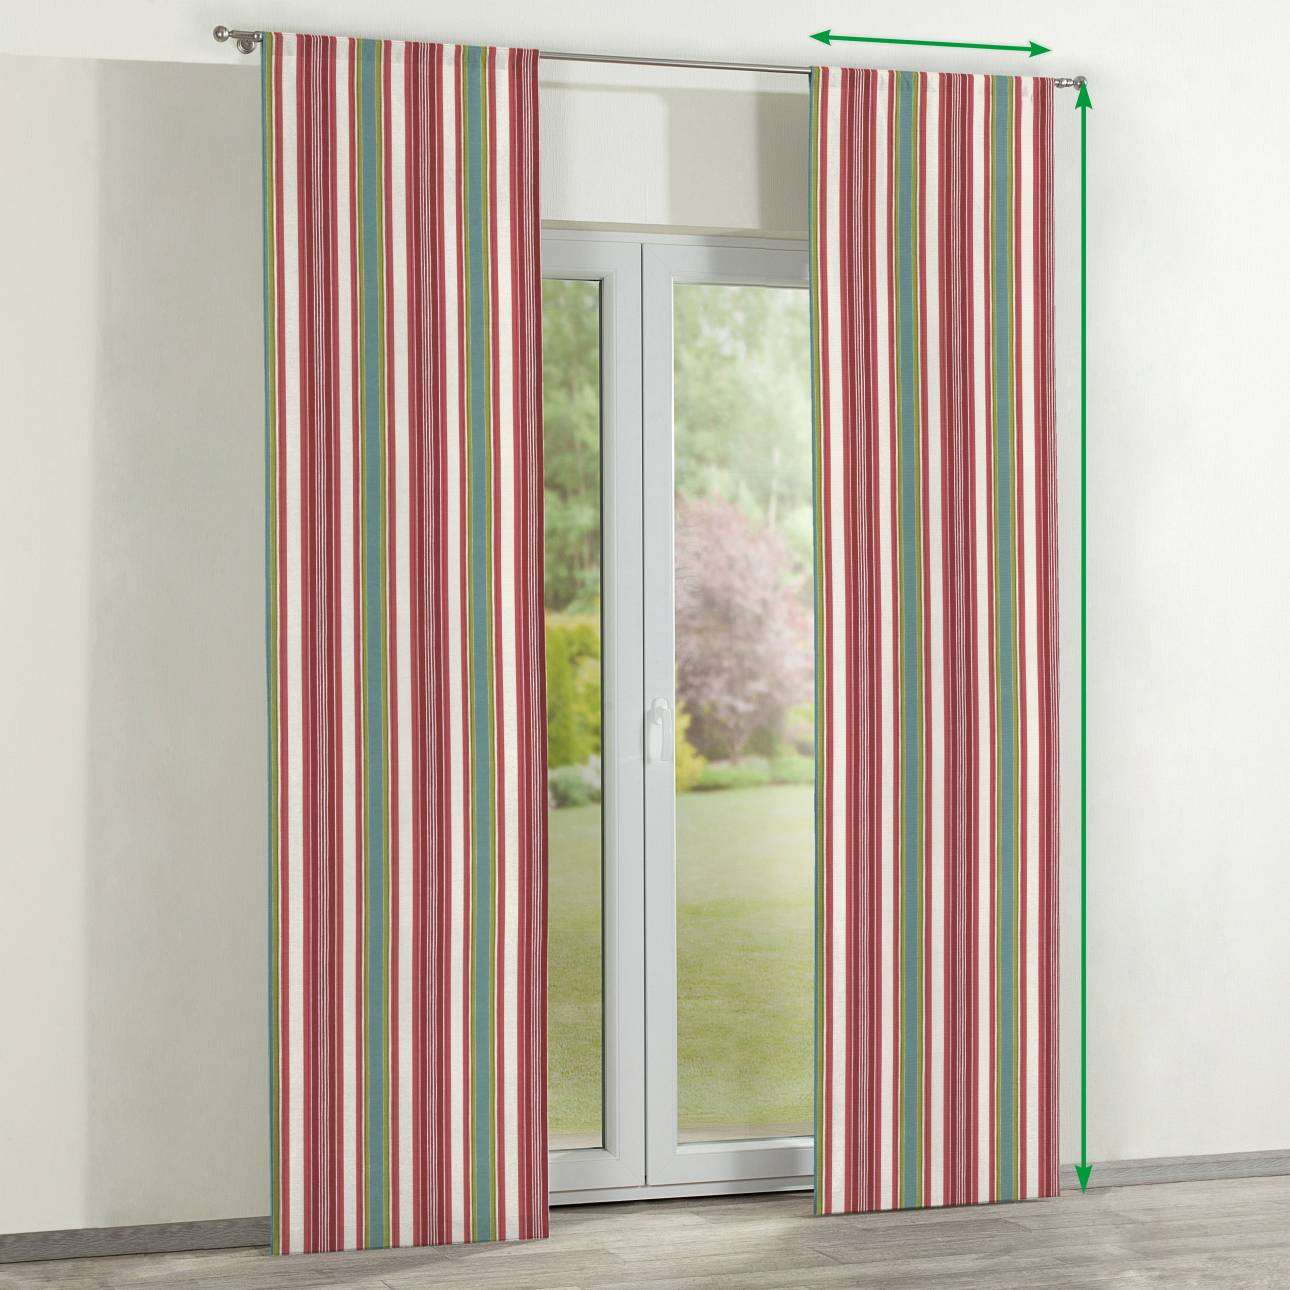 Slot panel curtains – Set of 2 in collection Londres, fabric: 122-01